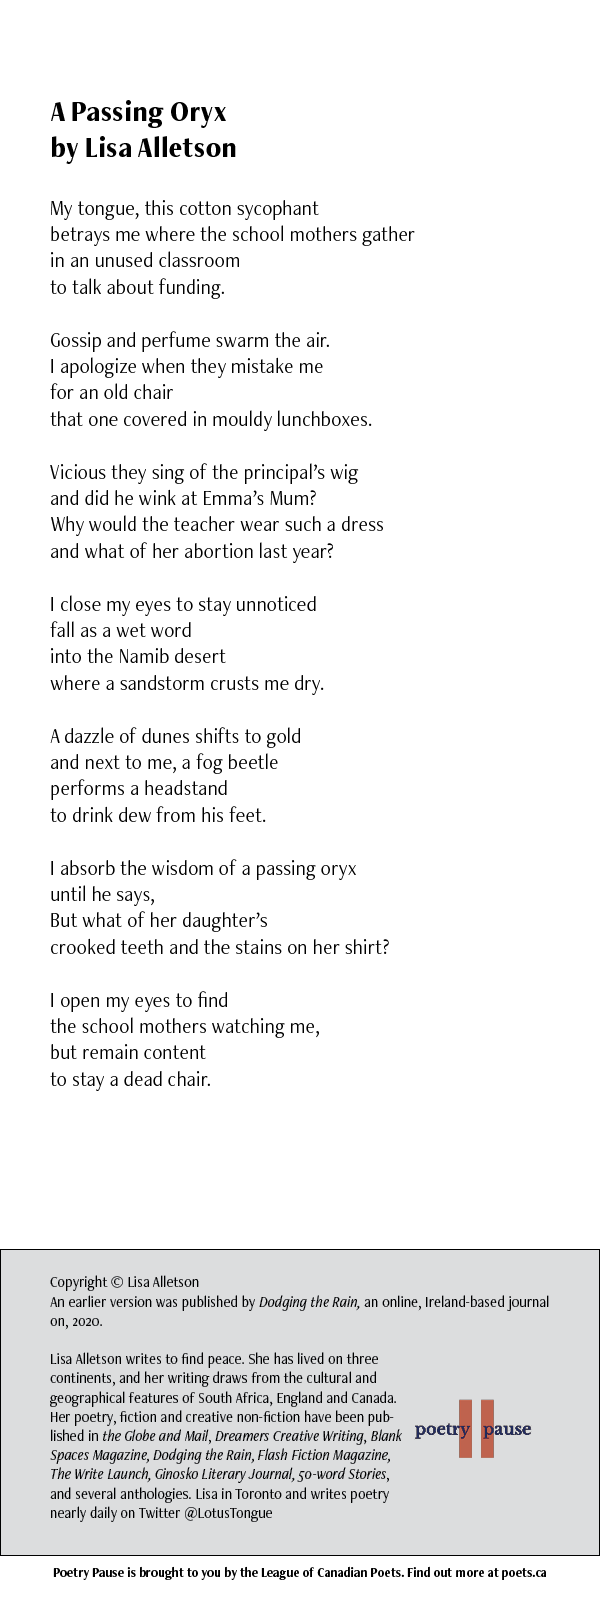 POEM NAME: A Passing Oryx AUTHOR NAME: Lisa Alletson POEM: My tongue, this cotton sycophant betrays me where the school mothers gather in an unused classroom to talk about funding. Gossip and perfume swarm the air. I apologize when they mistake me for an old chair that one covered in mouldy lunchboxes. Vicious they sing of the principal's wig and did he wink at Emma's Mum? Why would the teacher wear such a dress and what of her abortion last year? I close my eyes to stay unnoticed fall as a wet word into the Namib desert where a sandstorm crusts me dry. A dazzle of dunes shifts to gold and next to me, a fog beetle performs a headstand to drink dew from his feet. I absorb the wisdom of a passing oryx until he says, But what of her daughter's crooked teeth and the stains on her shirt? I open my eyes to find the school mothers watching me, but remain content to stay a dead chair. END OF POEM. CREDITS: Copyright © Lisa Alletson An earlier version was published by Dodging the Rain, an online, Ireland-based journal on, 2020. Lisa Alletson writes to find peace. She has lived on three continents, and her writing draws from the cultural and geographical features of South Africa, England and Canada. Her poetry, fiction and creative non-fiction have been published in the Globe and Mail, Dreamers Creative Writing, Blank Spaces Magazine, Dodging the Rain, Flash Fiction Magazine, The Write Launch, Ginosko Literary Journal, 50-word Stories, and several anthologies. Lisa in Toronto and writes poetry nearly daily on Twitter @LotusTongue